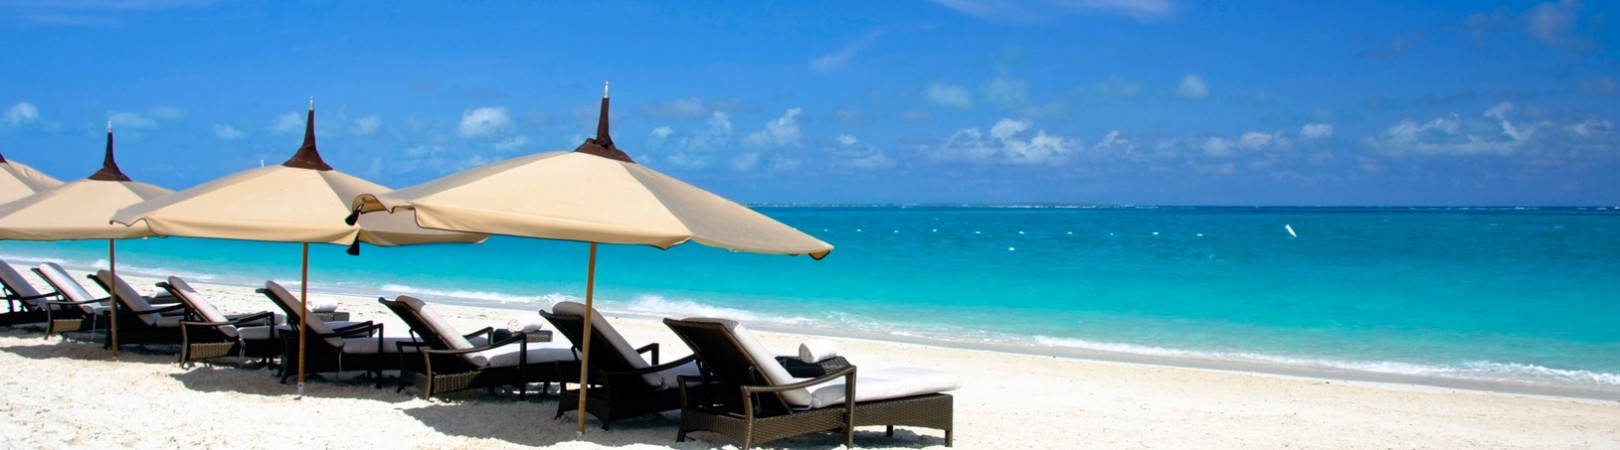 turks-and-caicos-travel-tips_Header